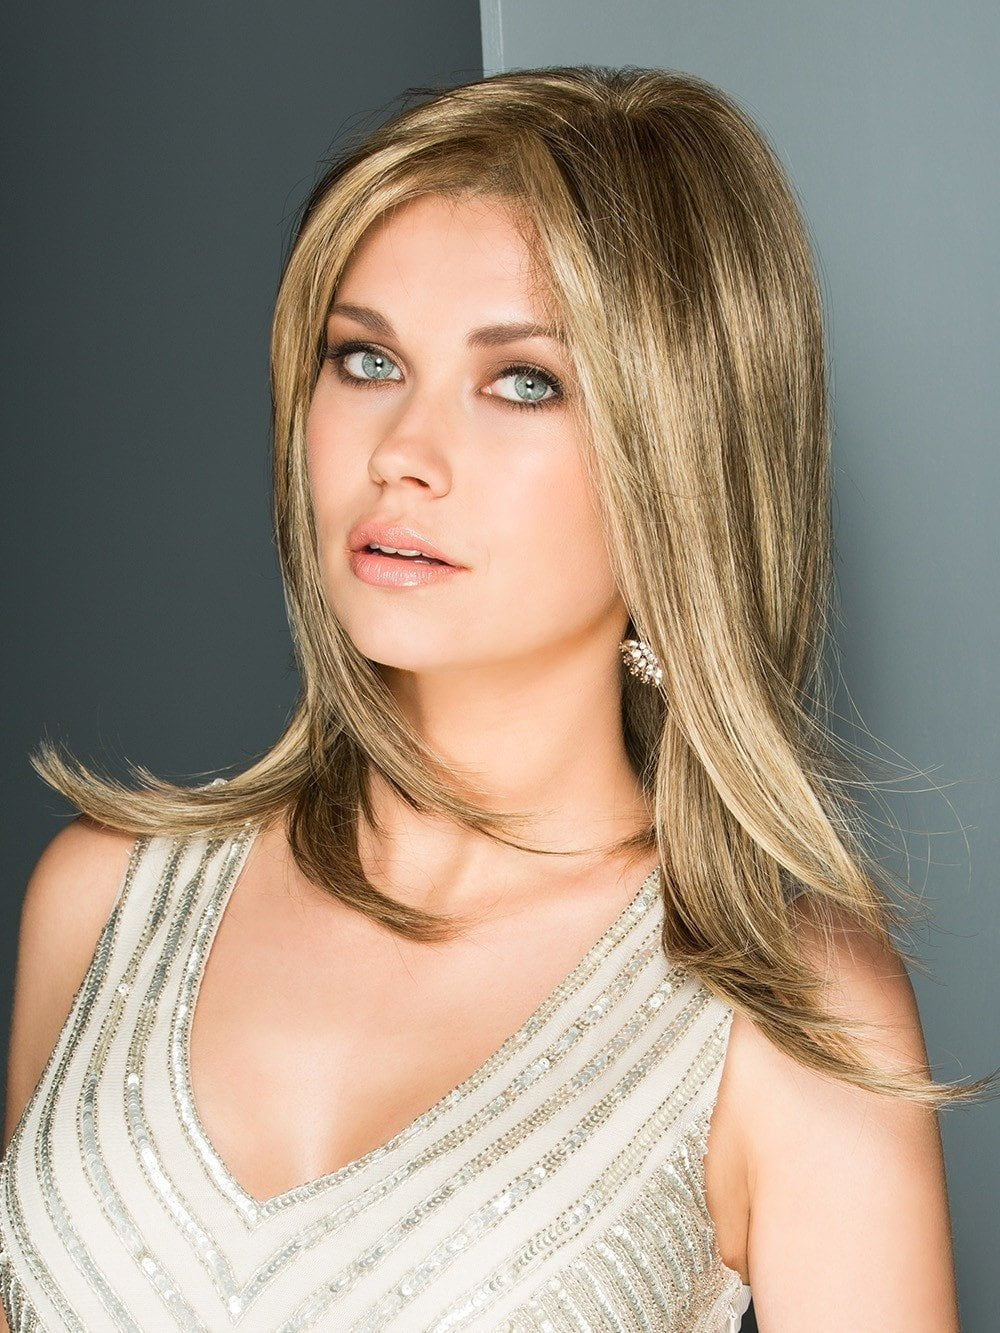 Glamorous long hair style with light wispy layers